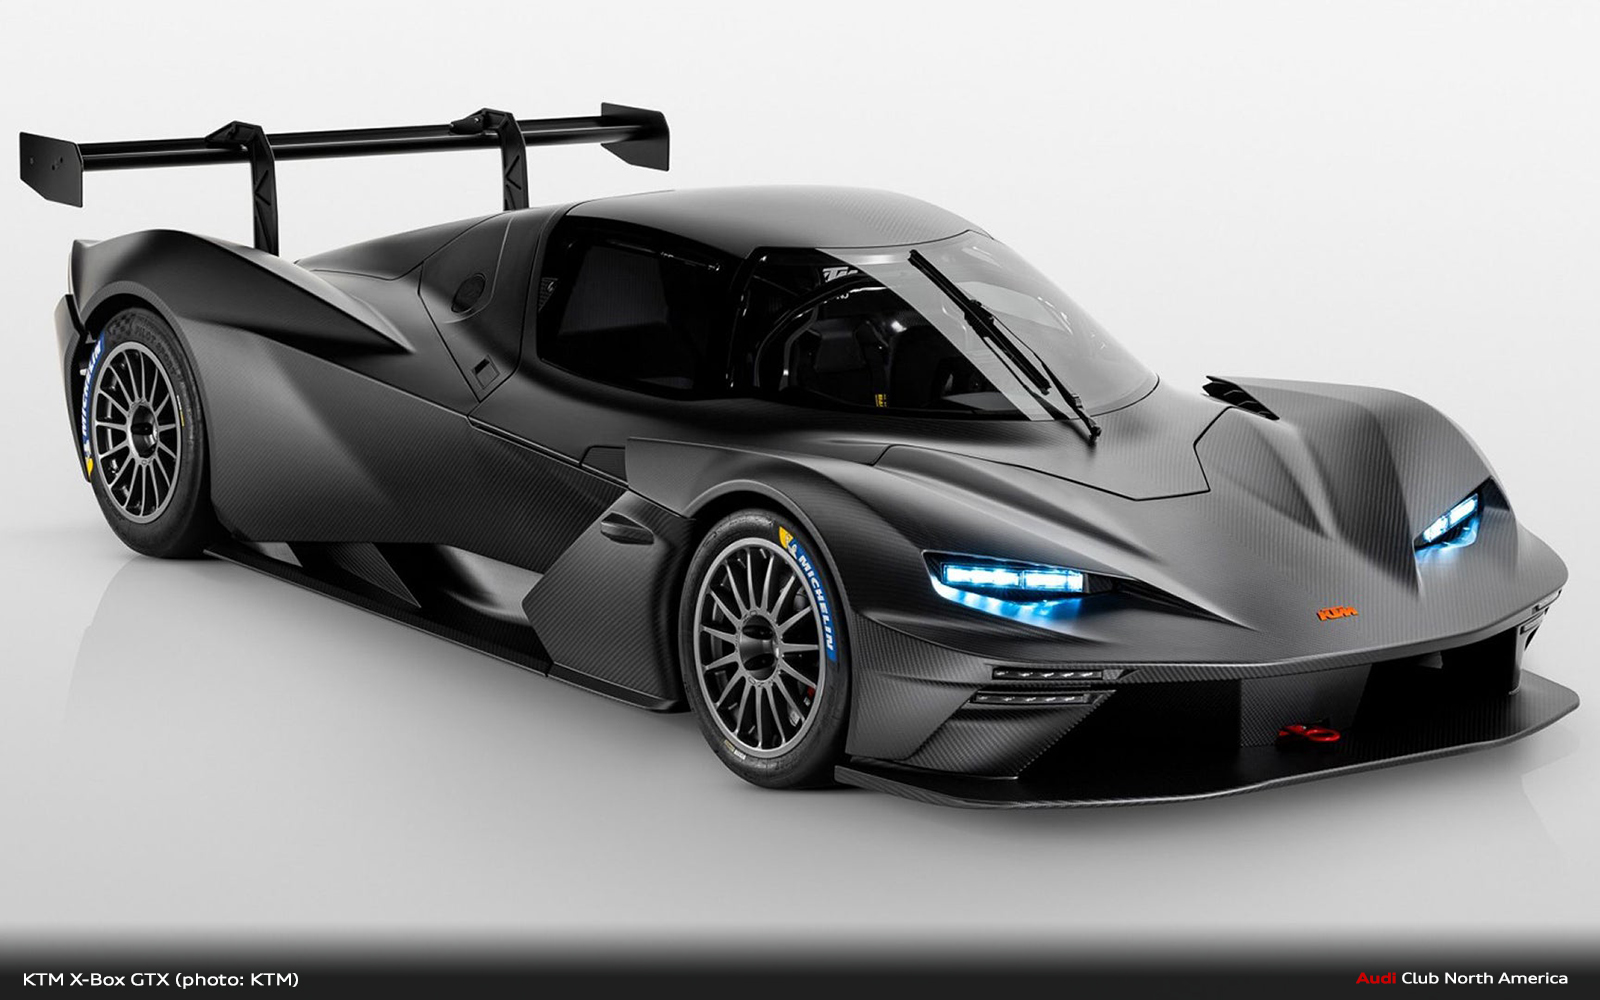 Official World Premiere of the KTM X-Bow GTX: First Glance of the Brand-New Carbon Racing Car